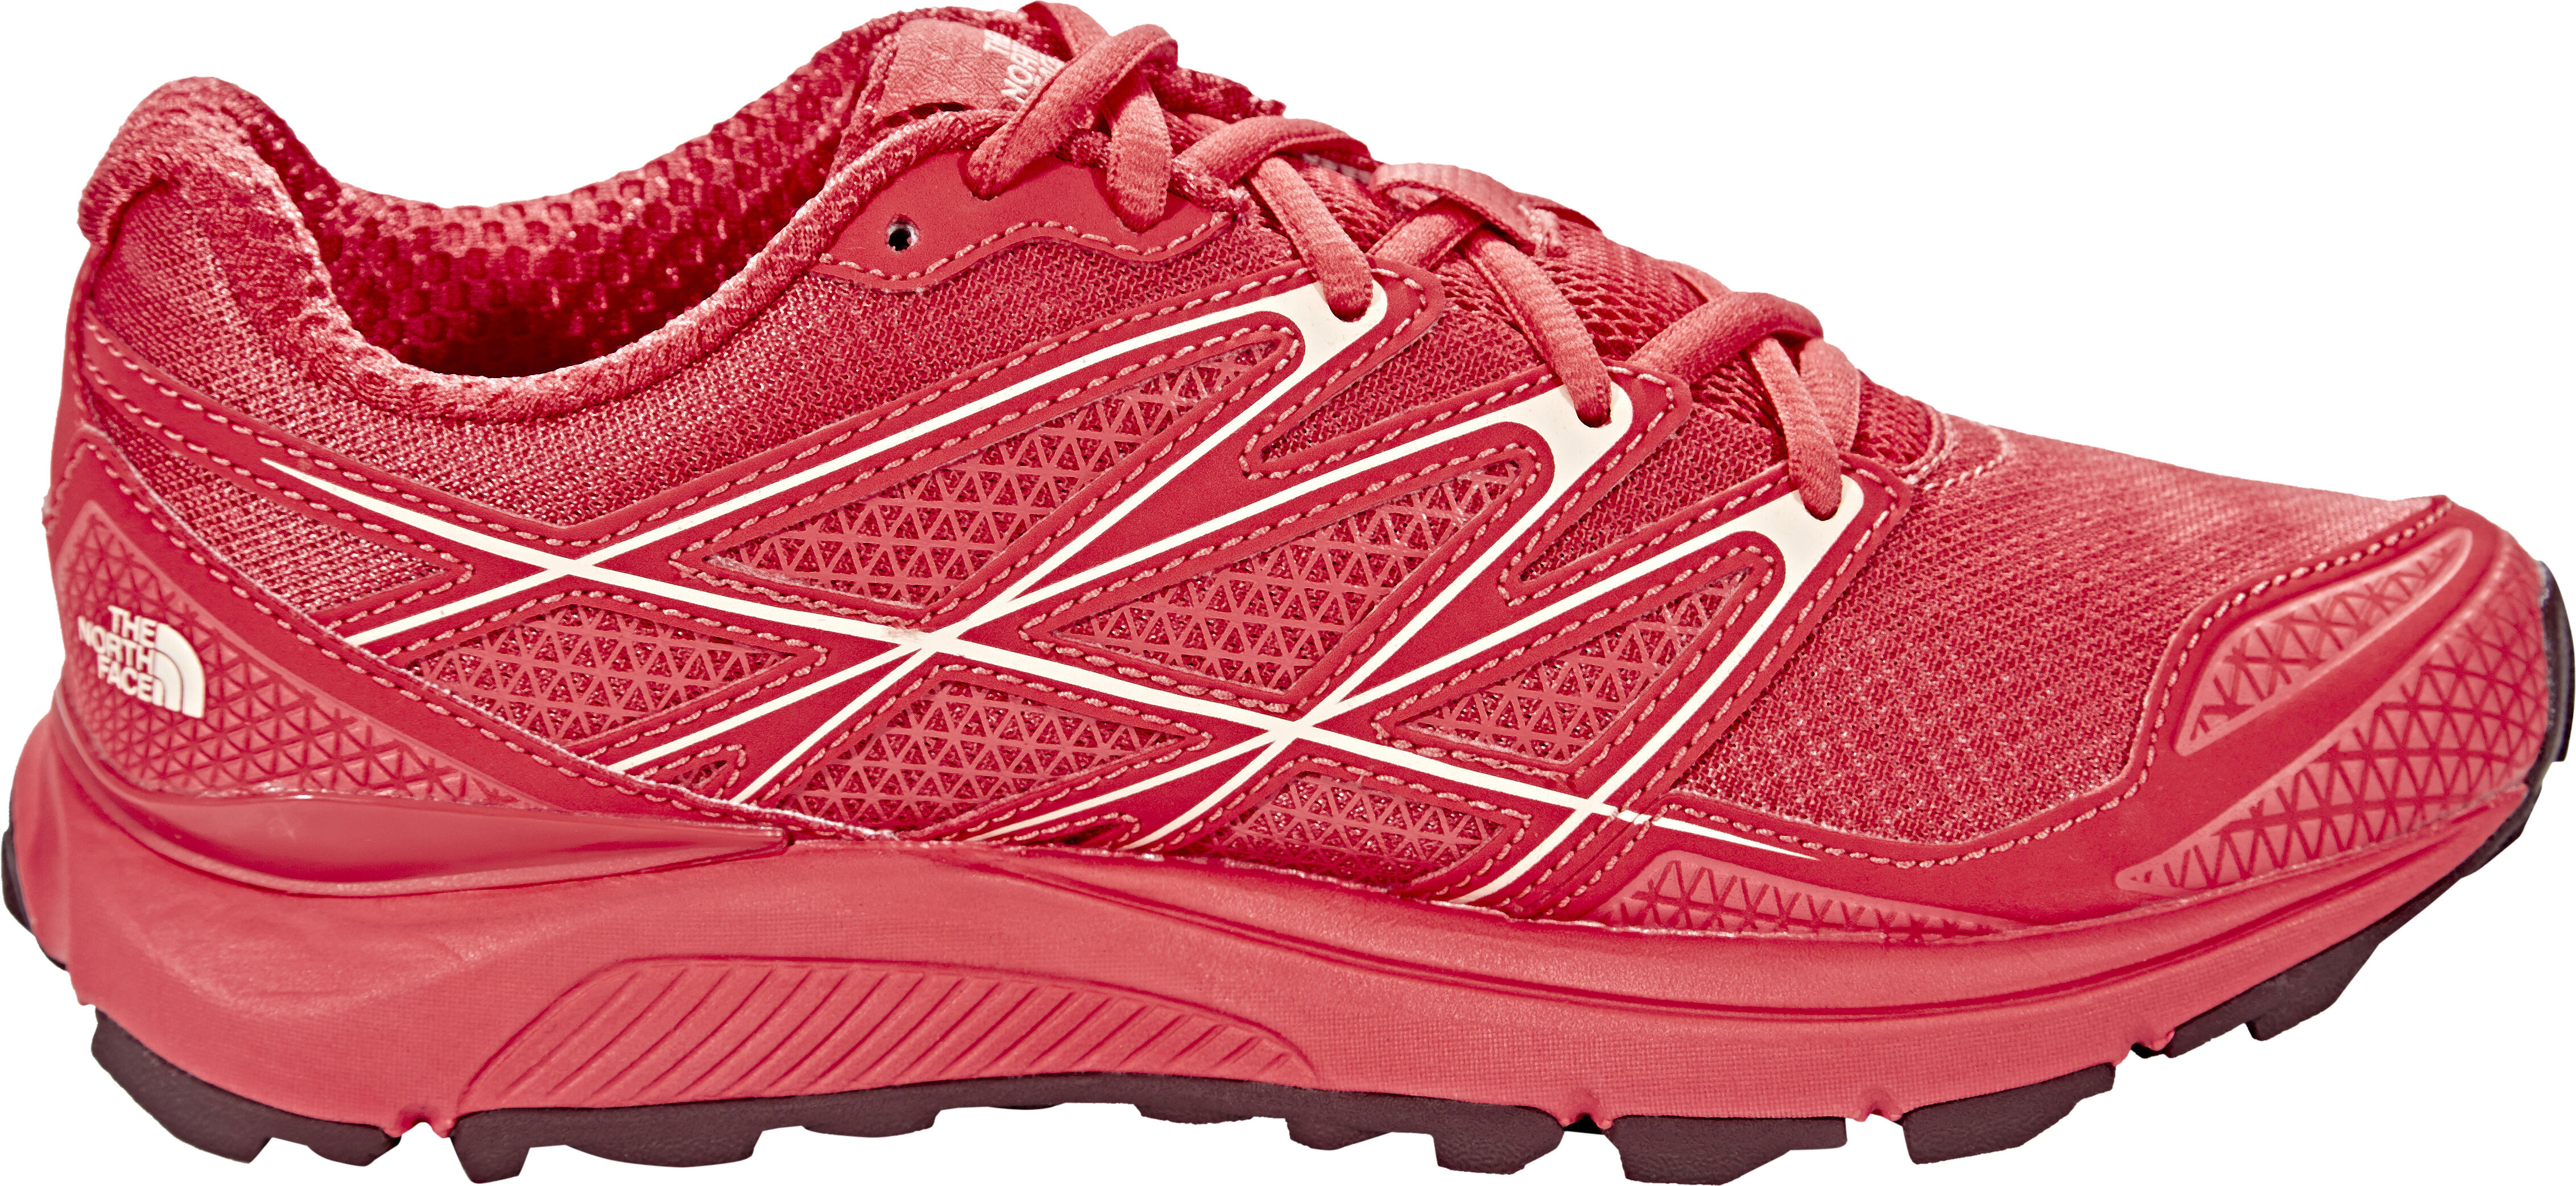 07f52dcb3f0 The North Face Litewave Endurance Løbesko Damer, cayenne red/tropical peach